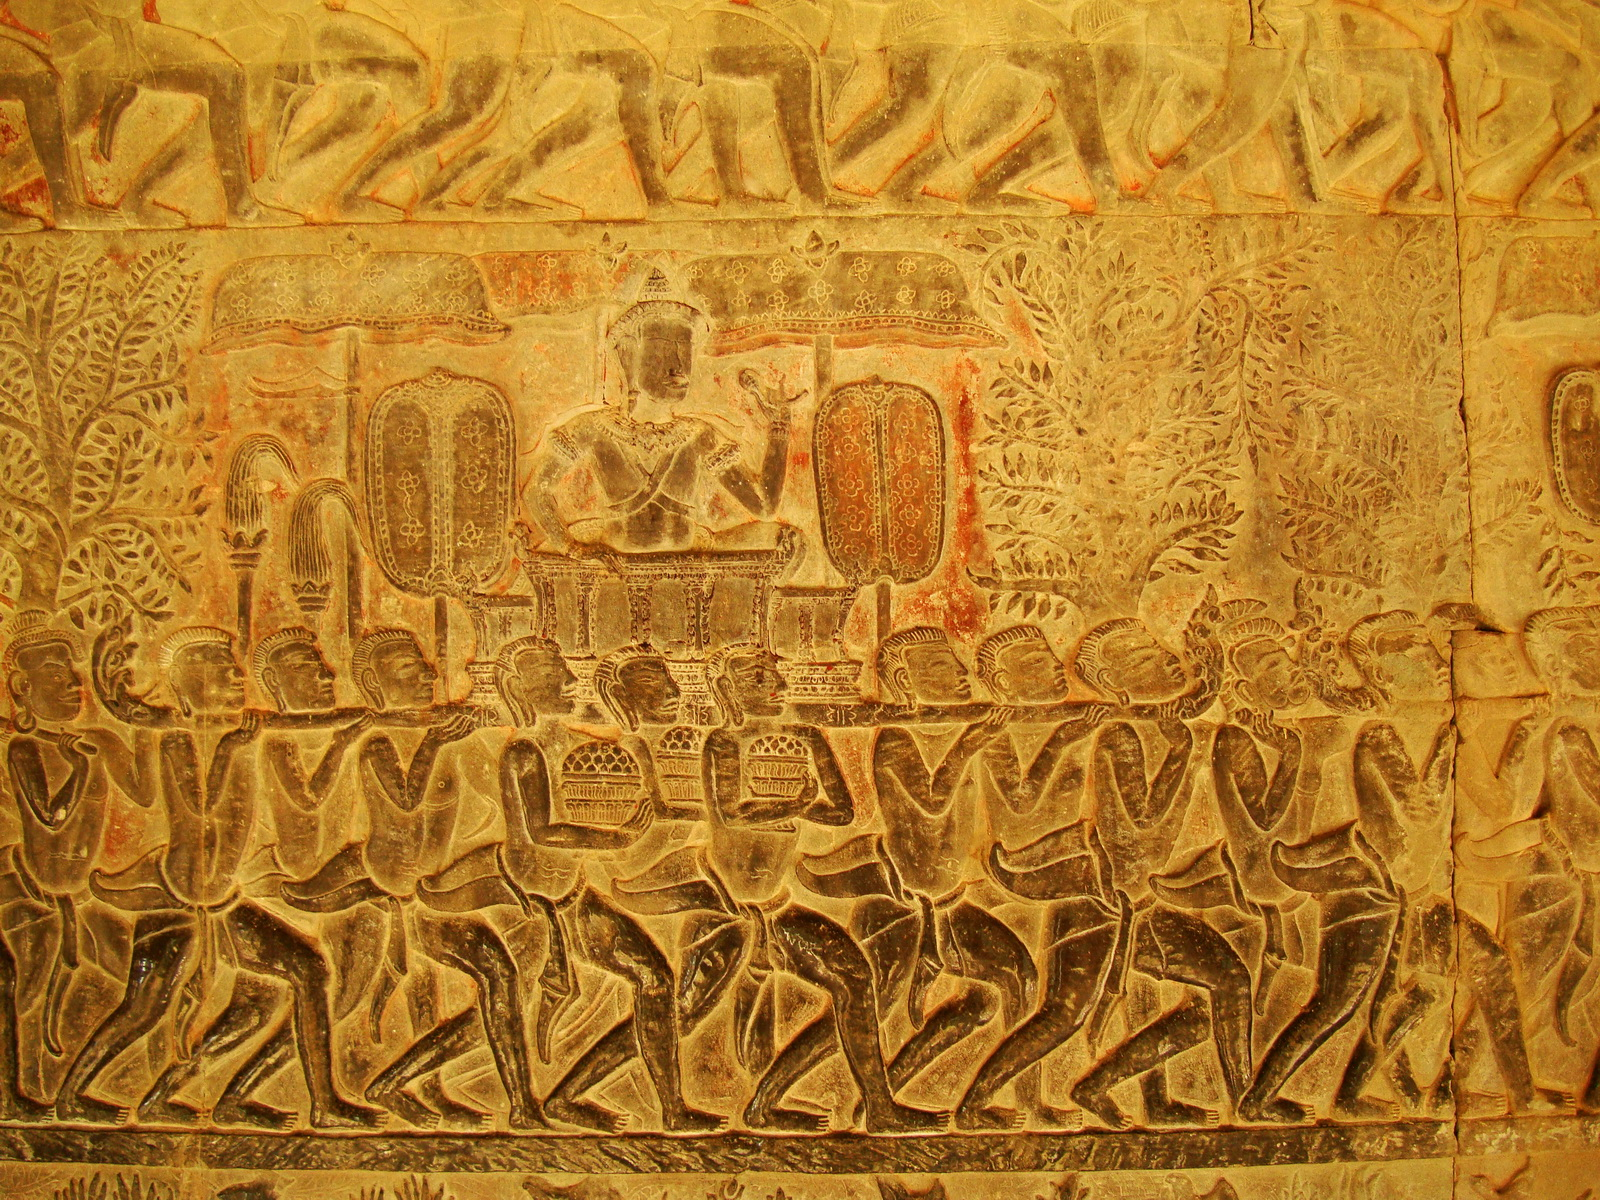 Angkor Wat Bas relief S Gallery E Wing Heavens and Hells 34